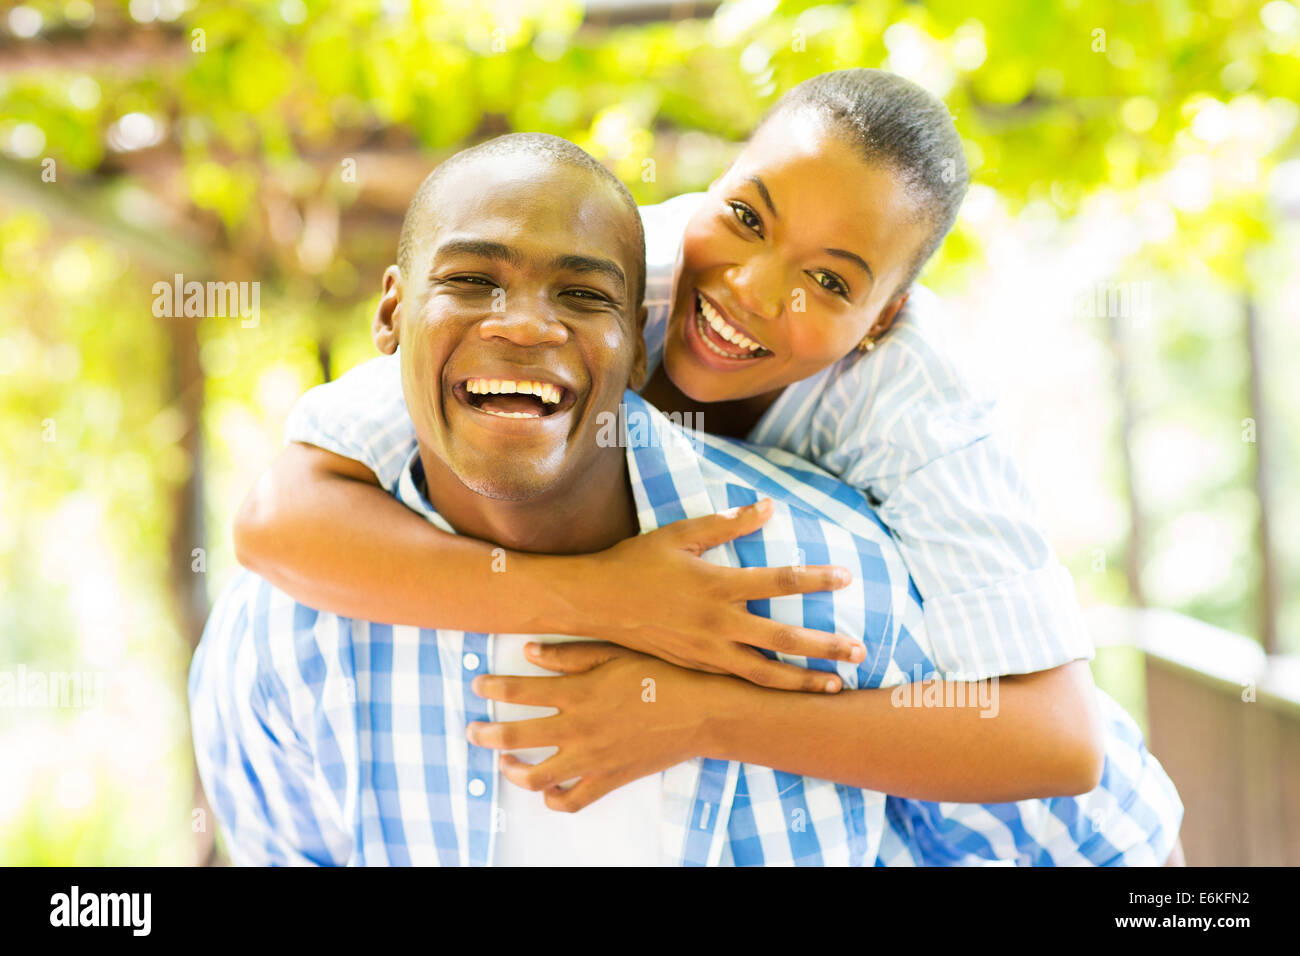 happy African woman enjoying piggyback ride on boyfriend outdoors - Stock Image